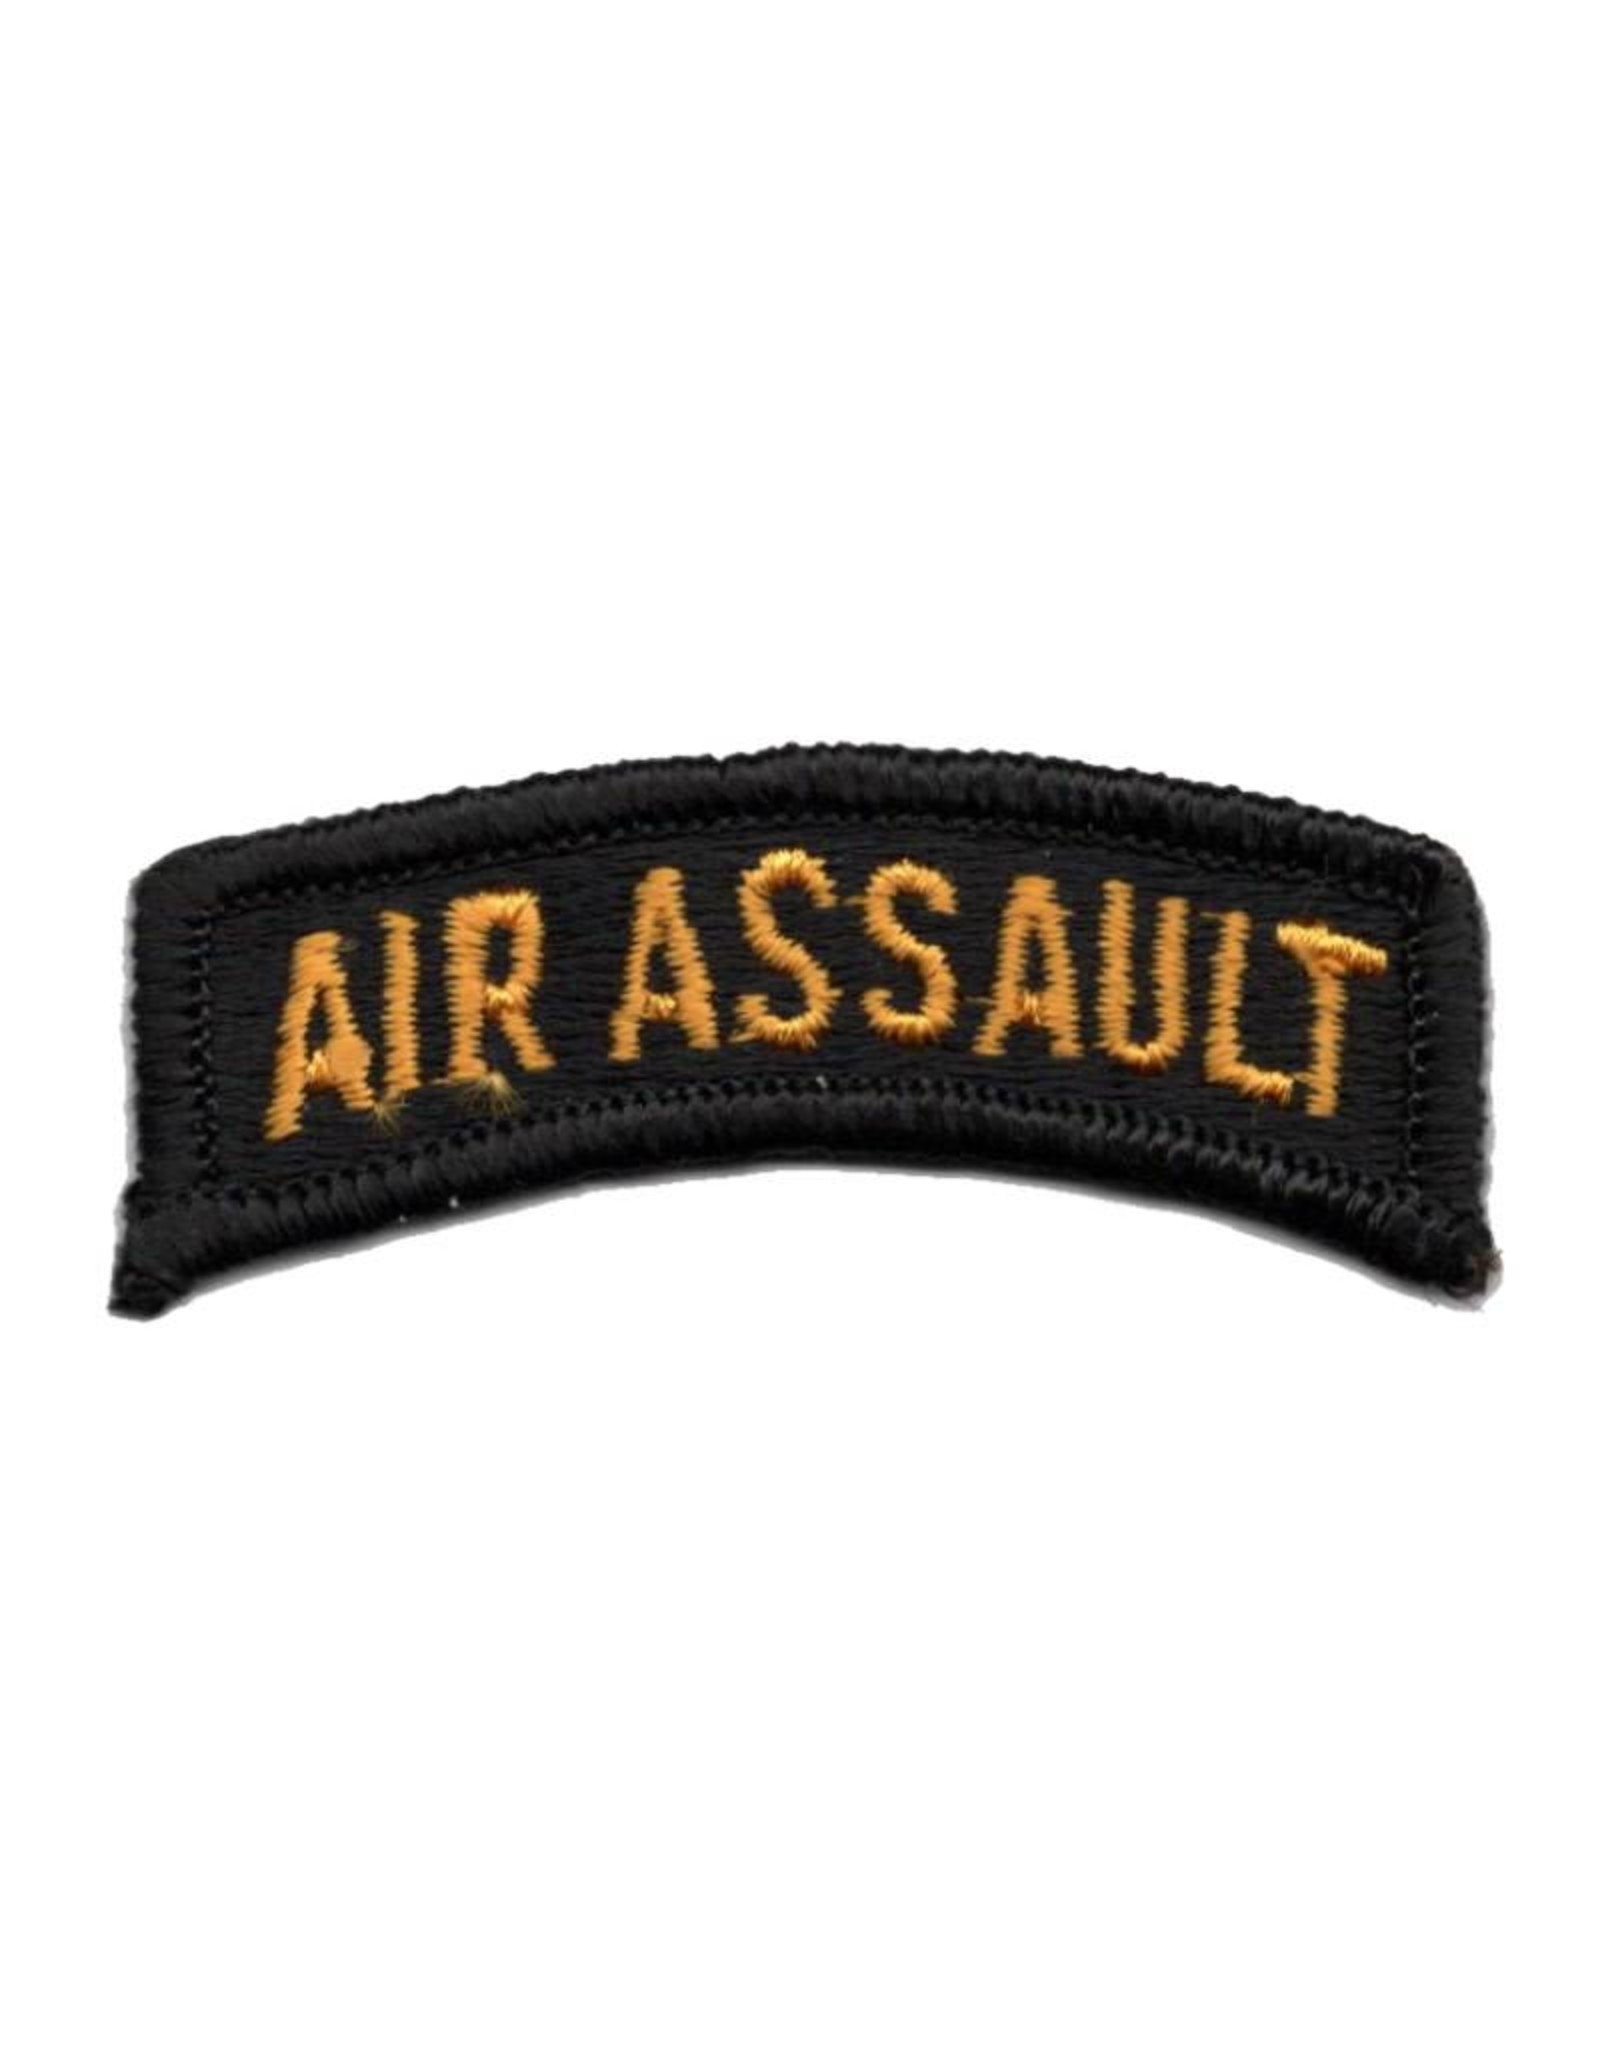 MidMil Embroidered Gold on Black Army Air Assault Tab Patch